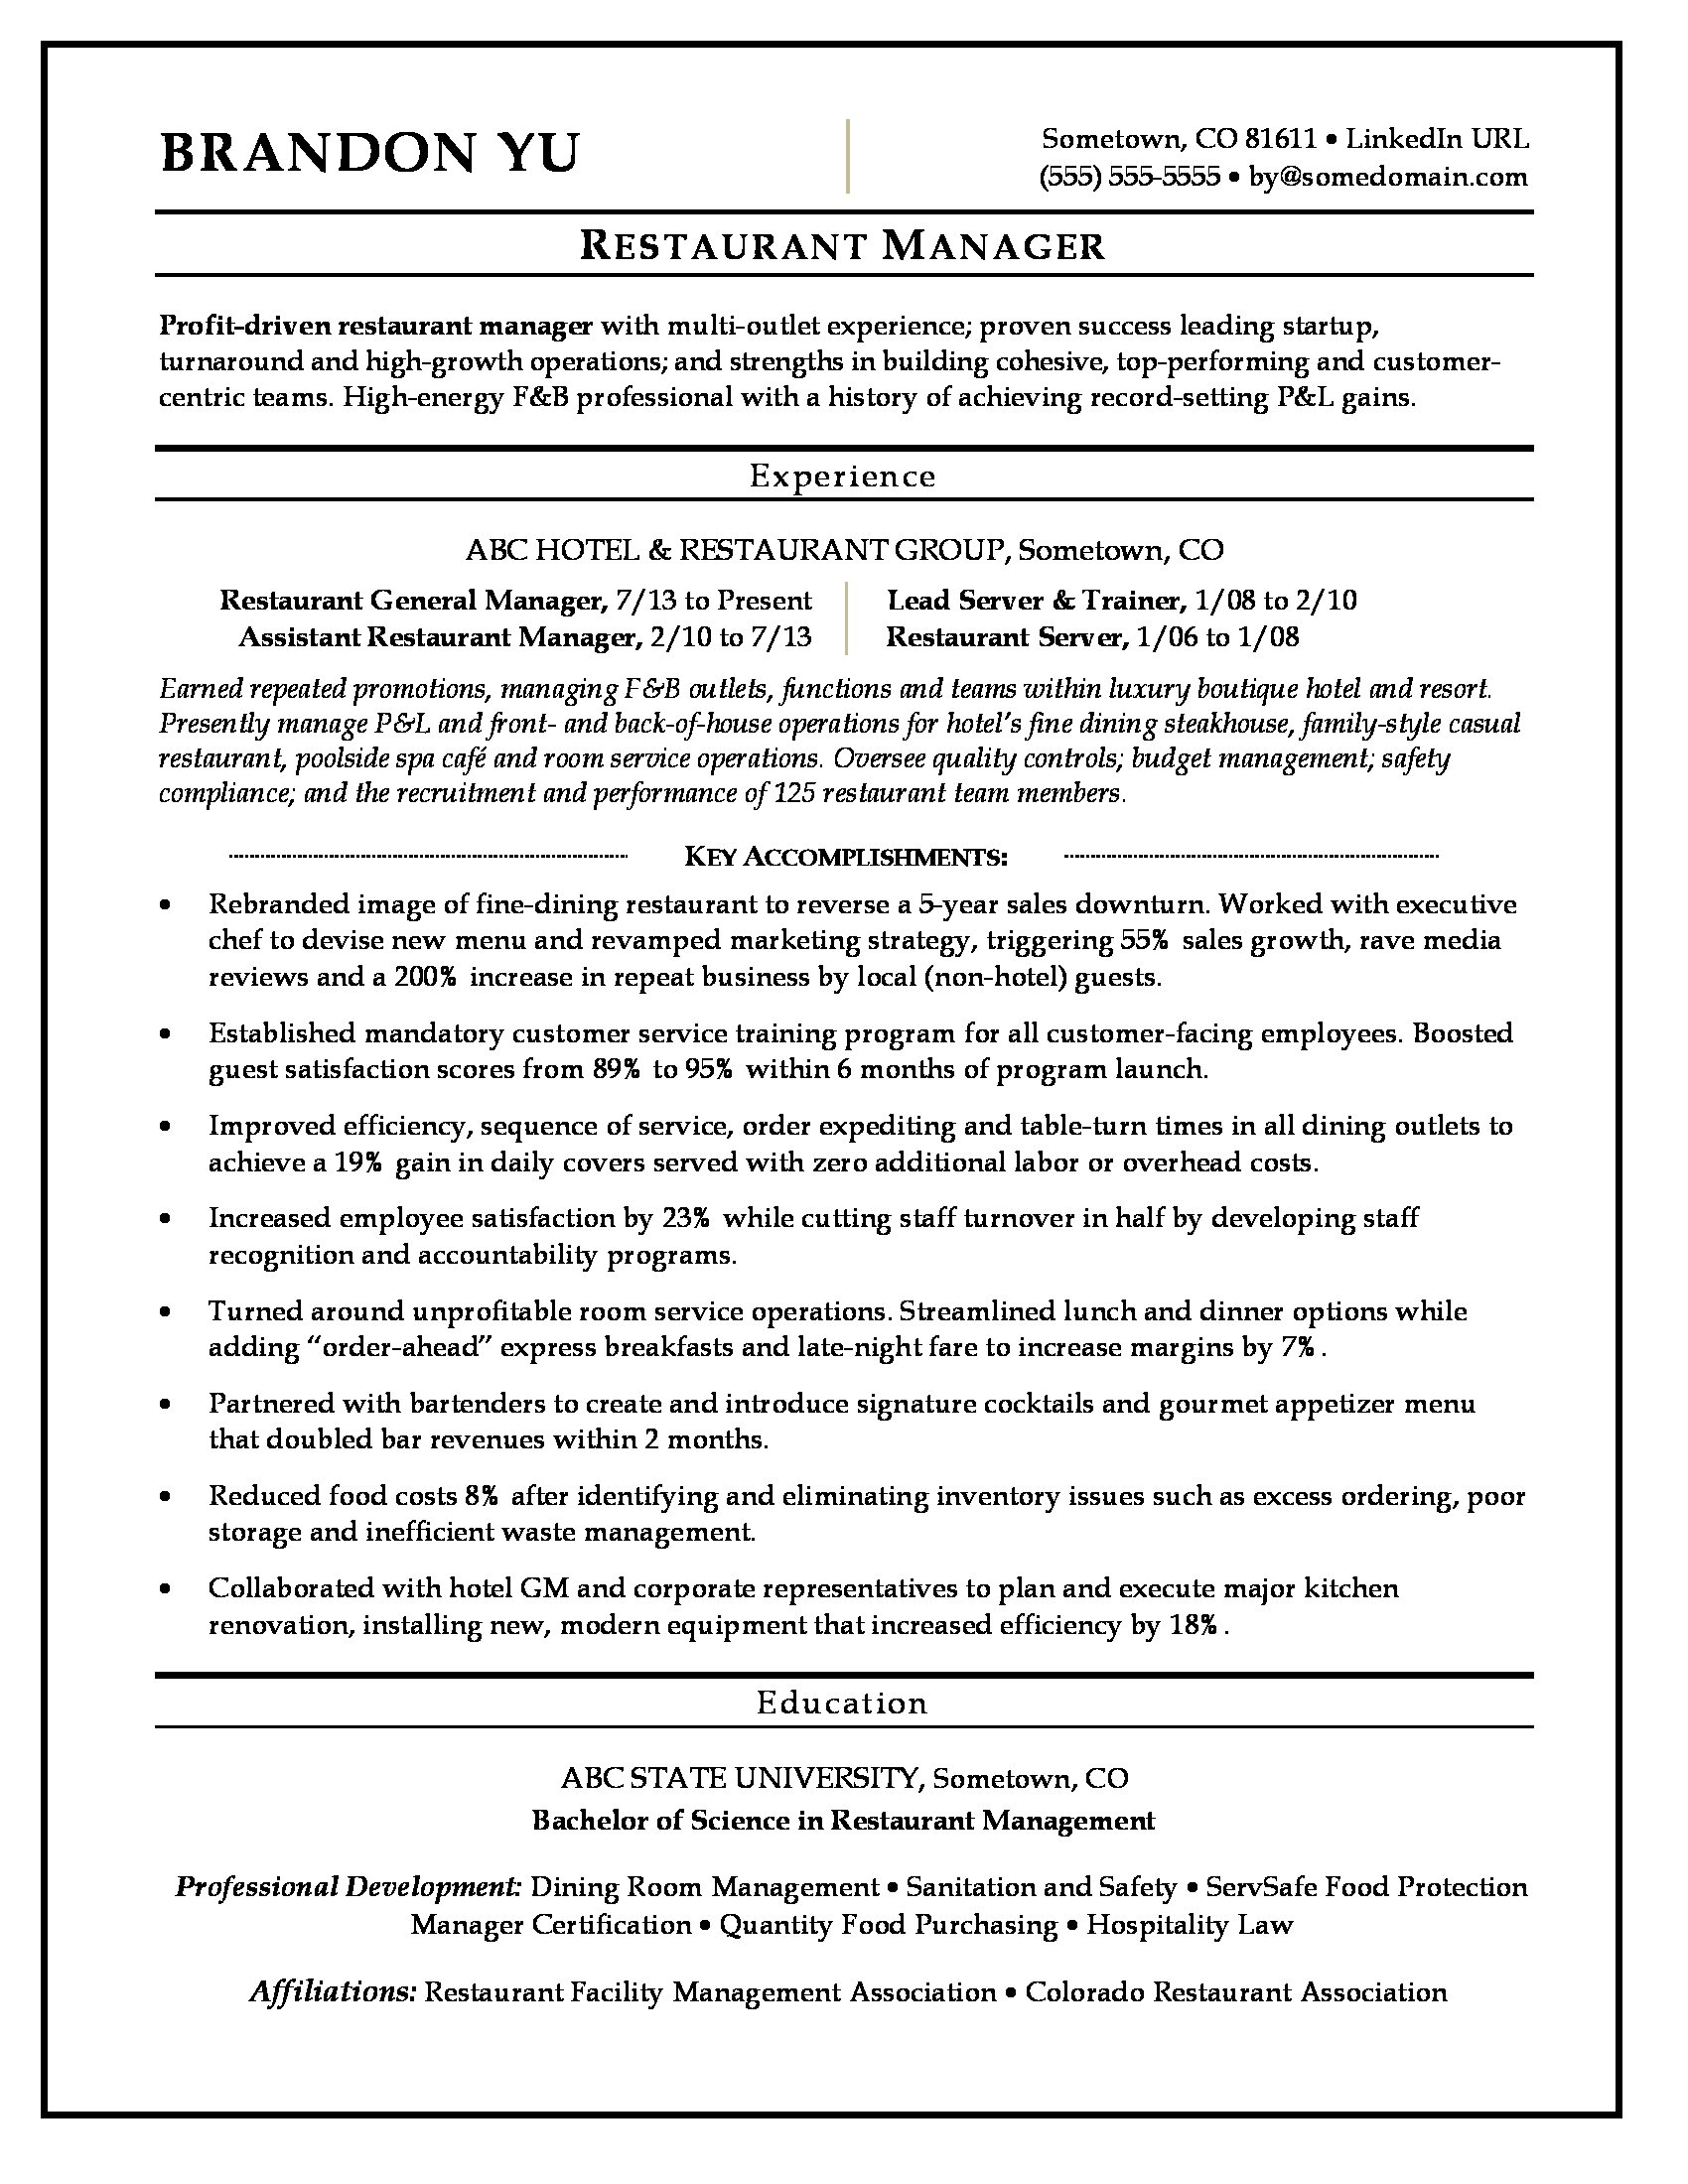 Management Skills For A Resume Restaurant Manager Resume Sample Monster